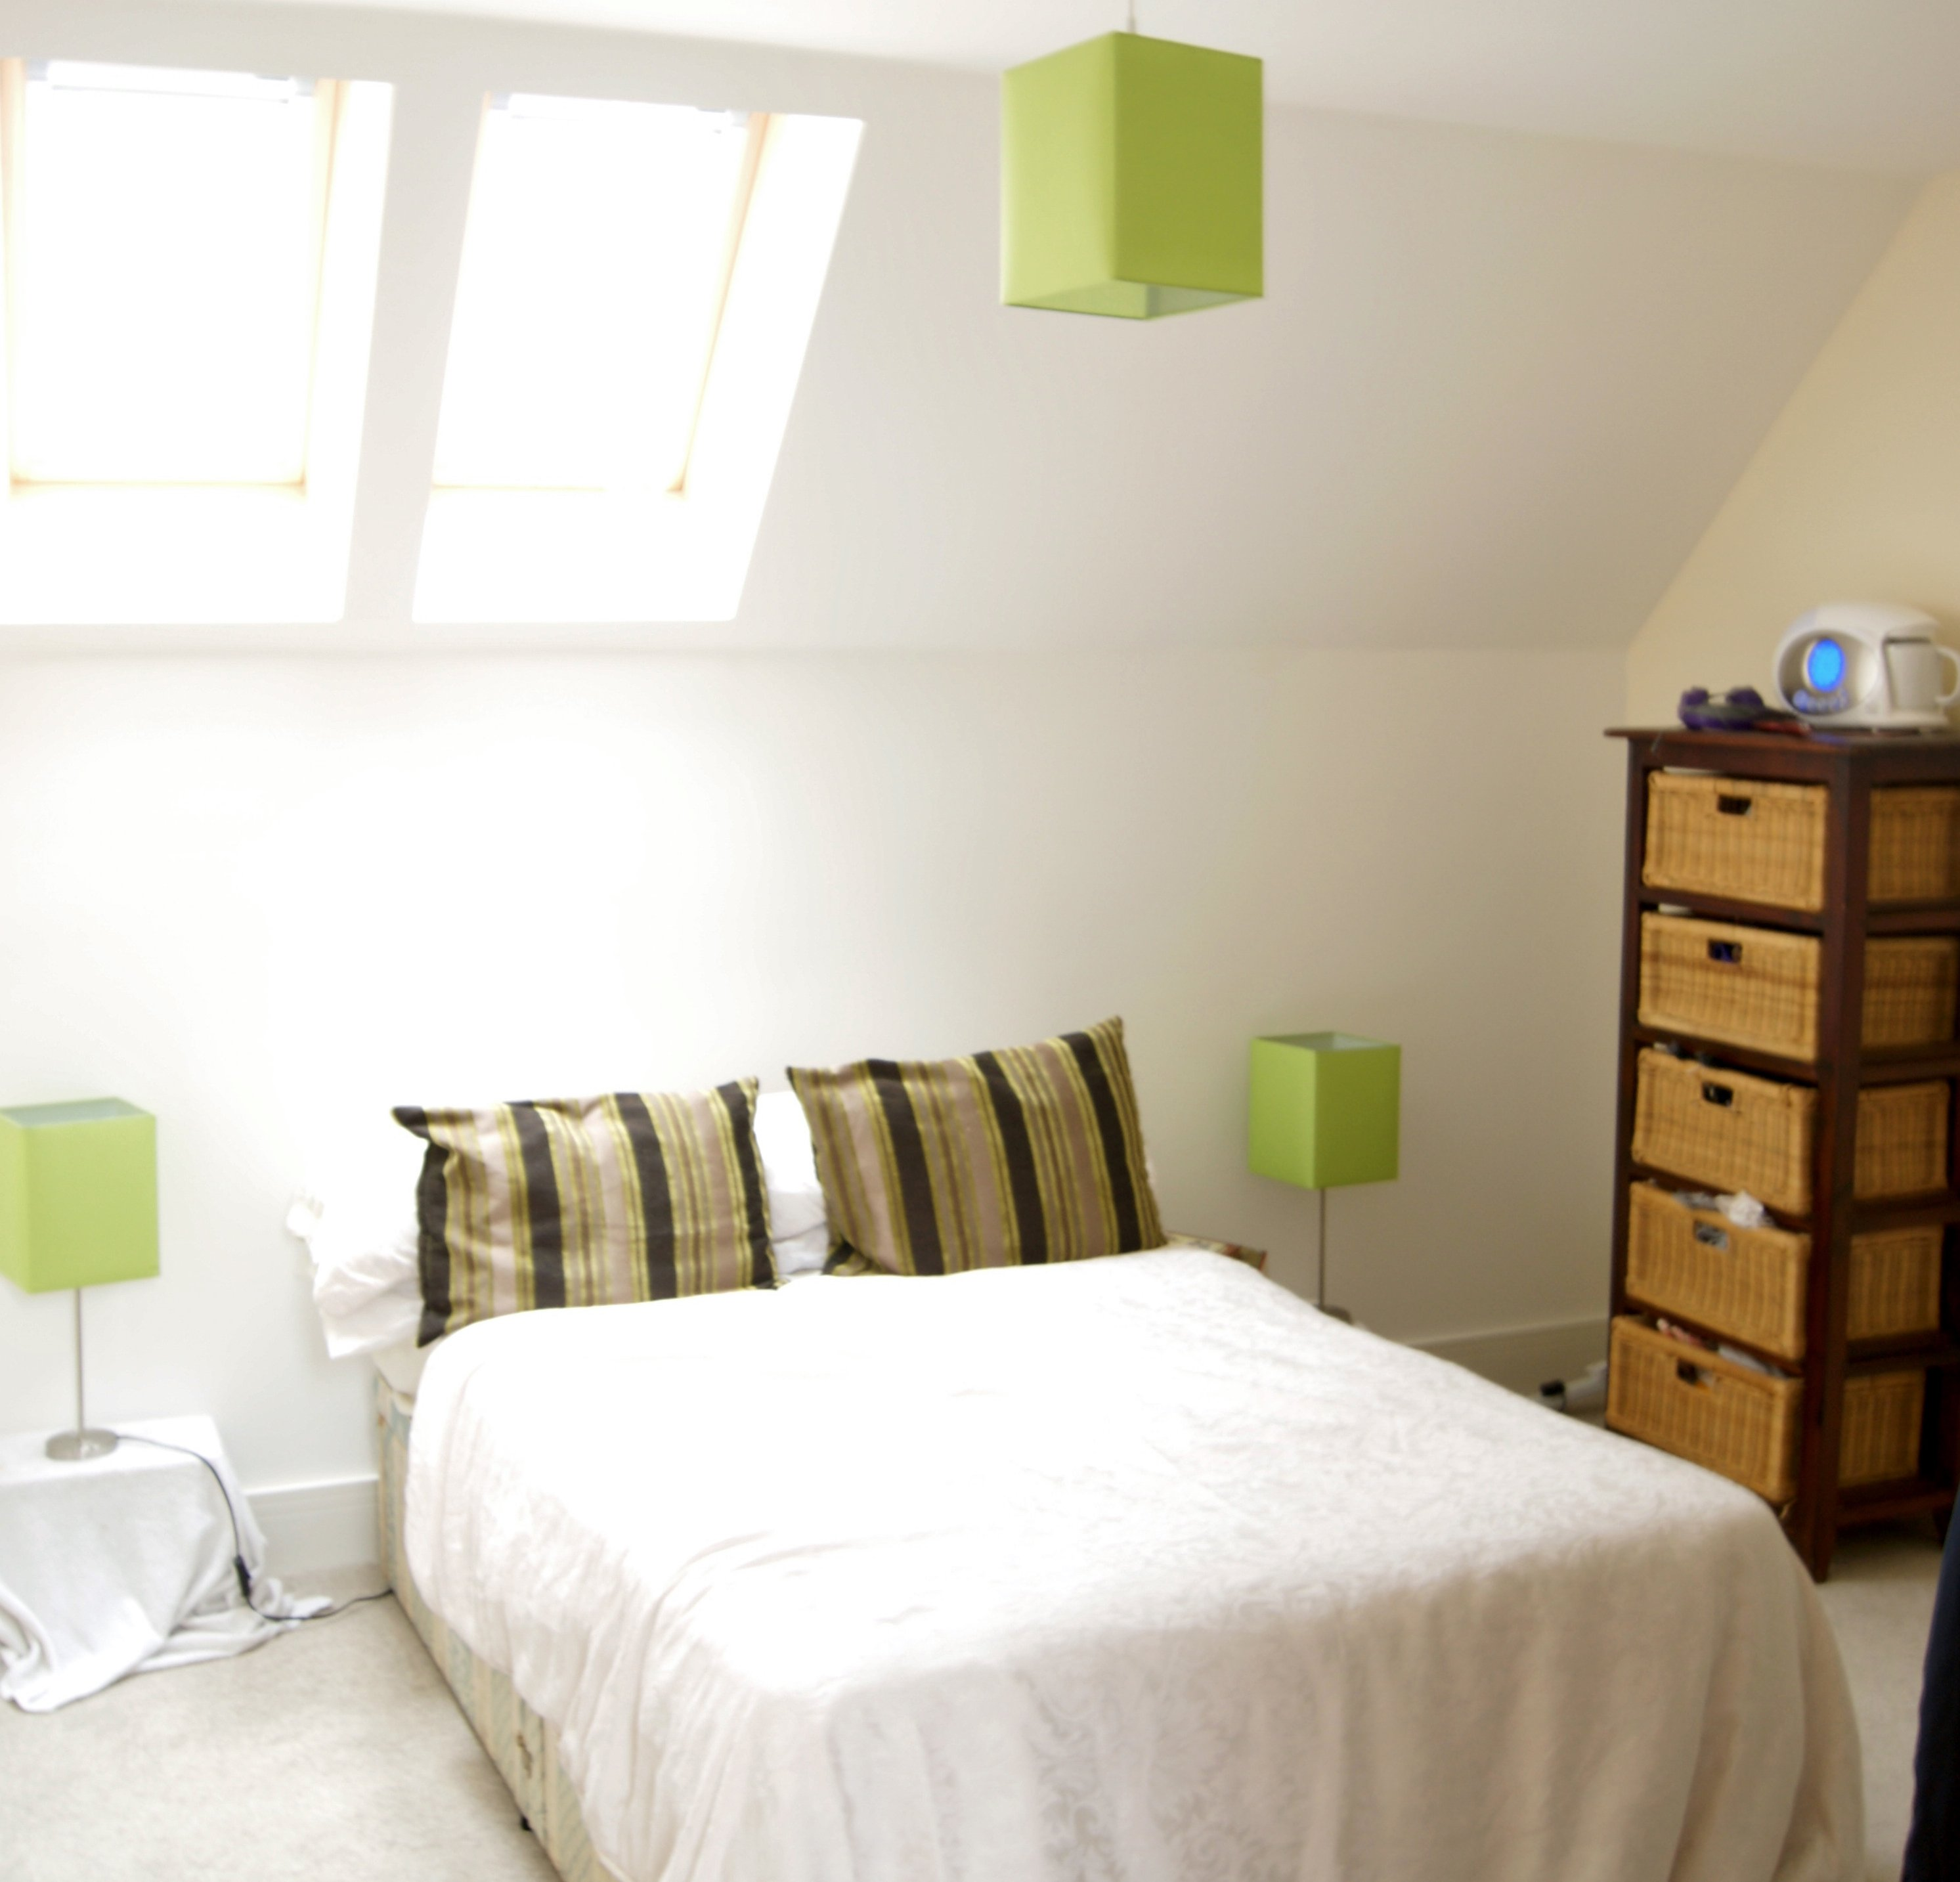 2 Bedroom Apartments For Rent By Owner: Poplar Road, Esher, KT10 0DD